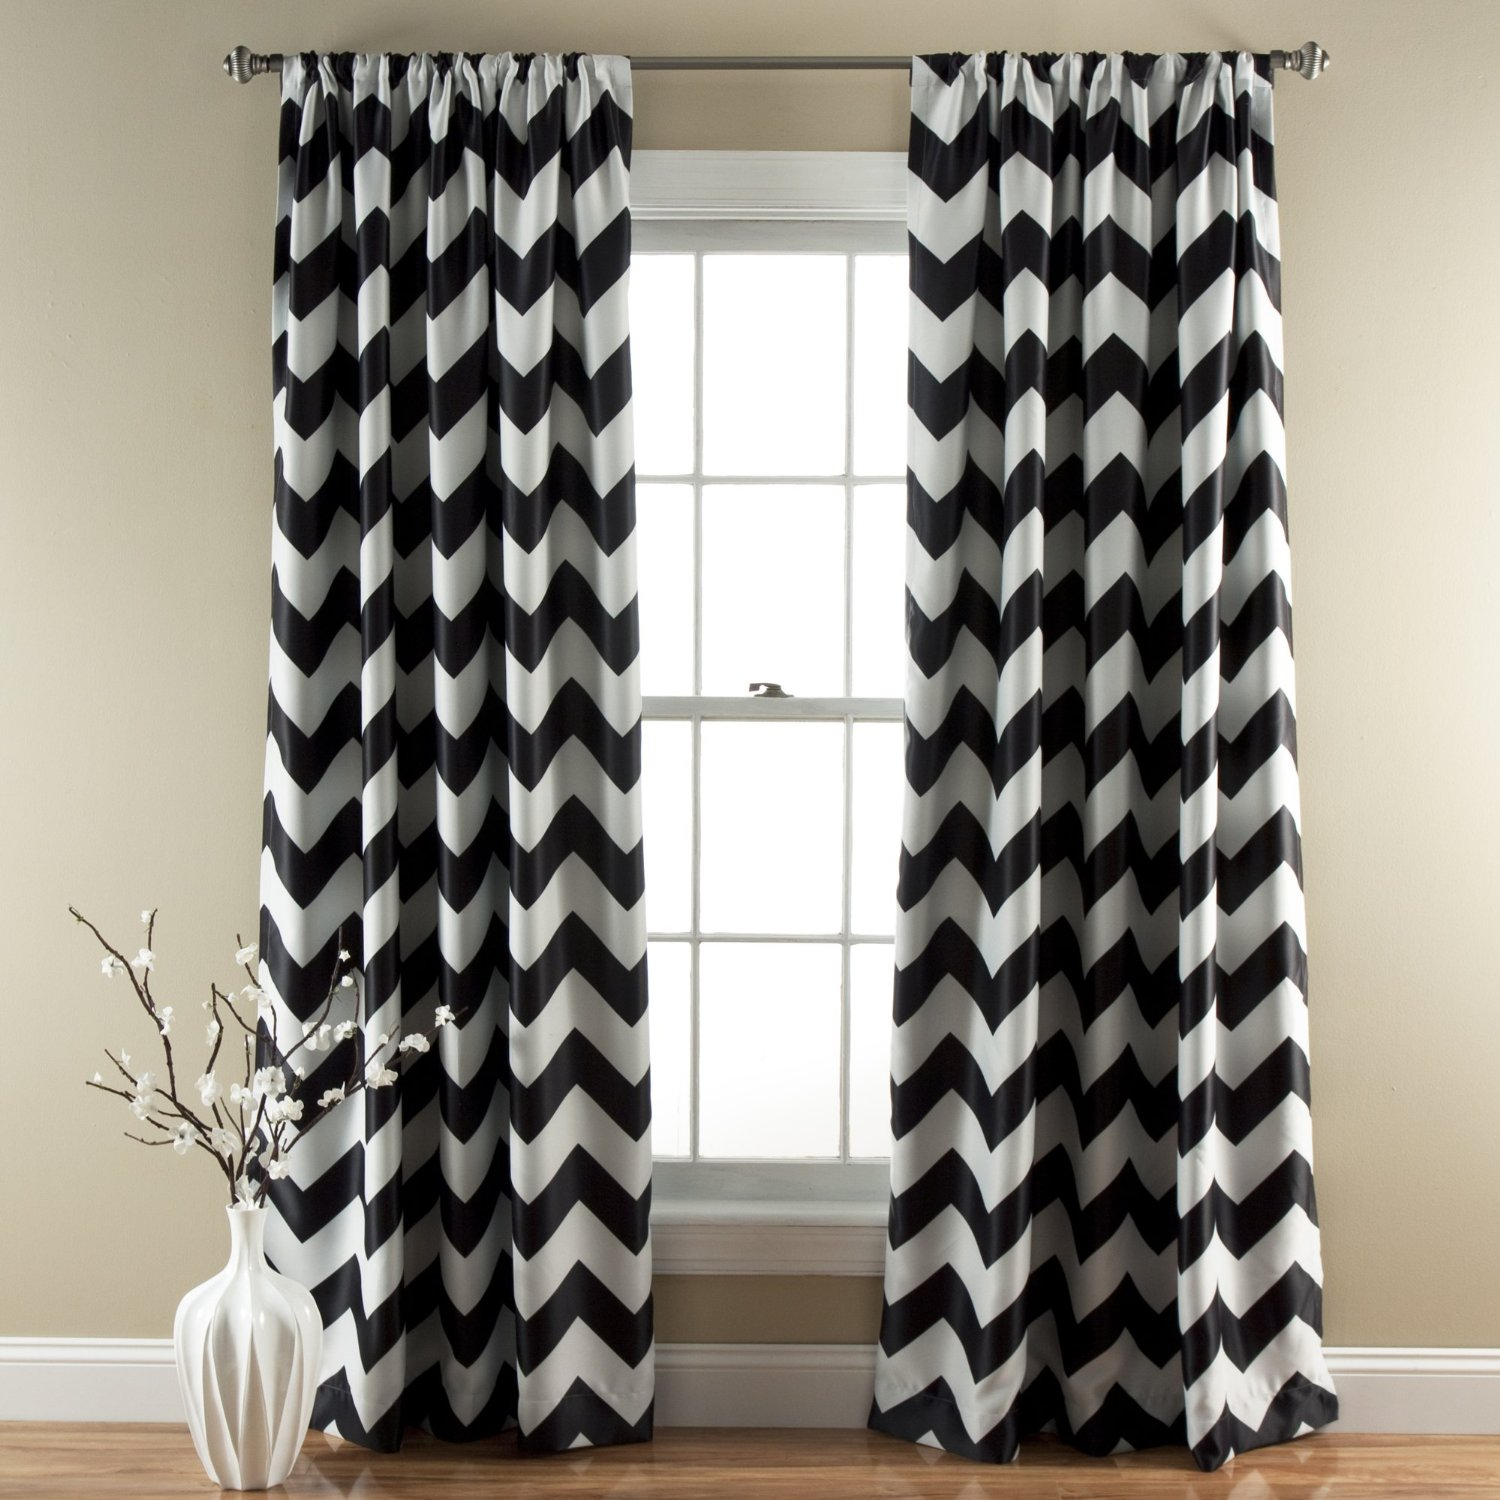 curtains of grey polyester kitchen set com white amazon cotton panels inch x chevron home curtain dp black mainstays